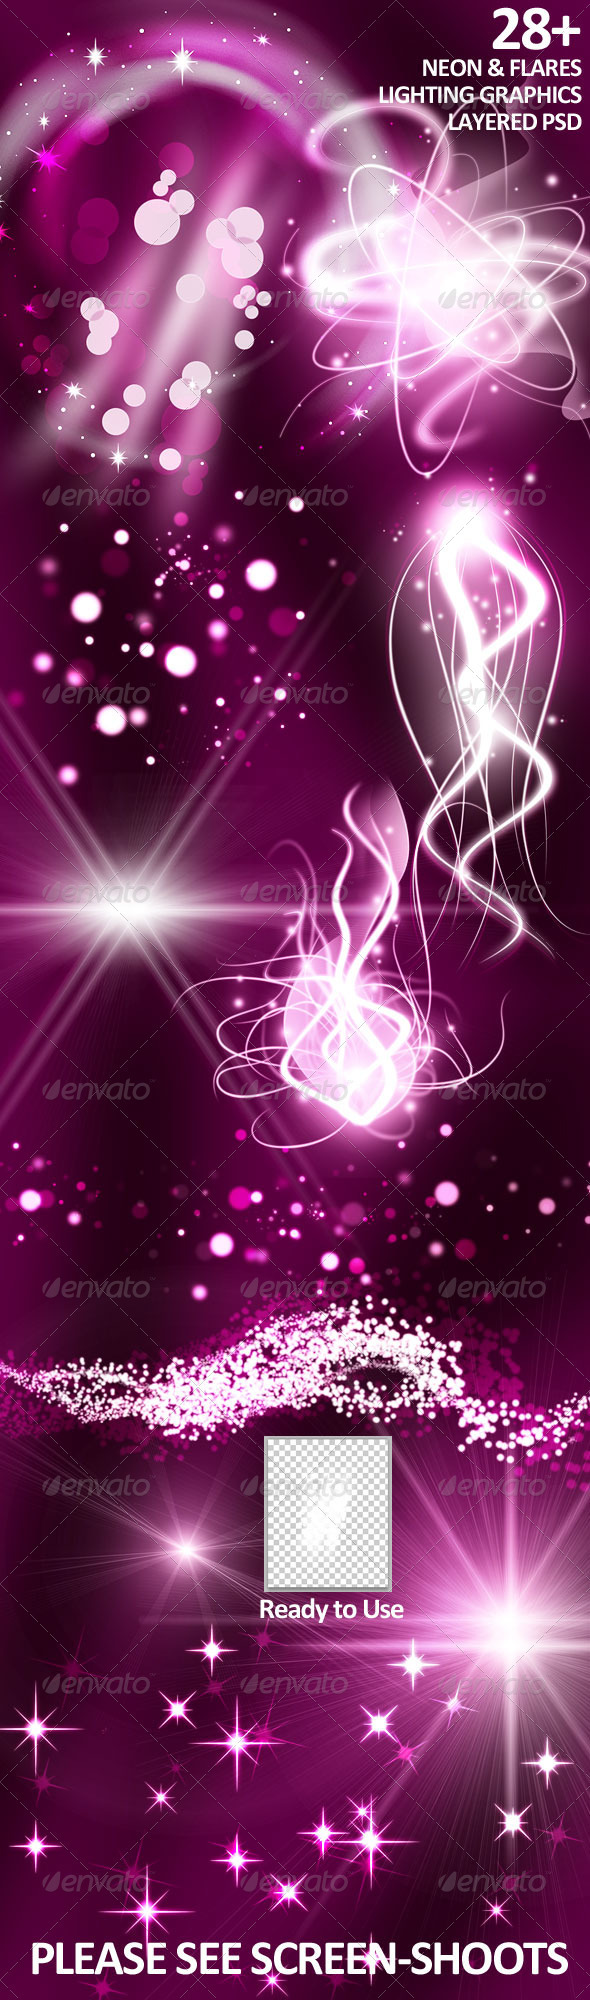 28+ Neon/Flares Lighting Layered PSD - Decorative Graphics